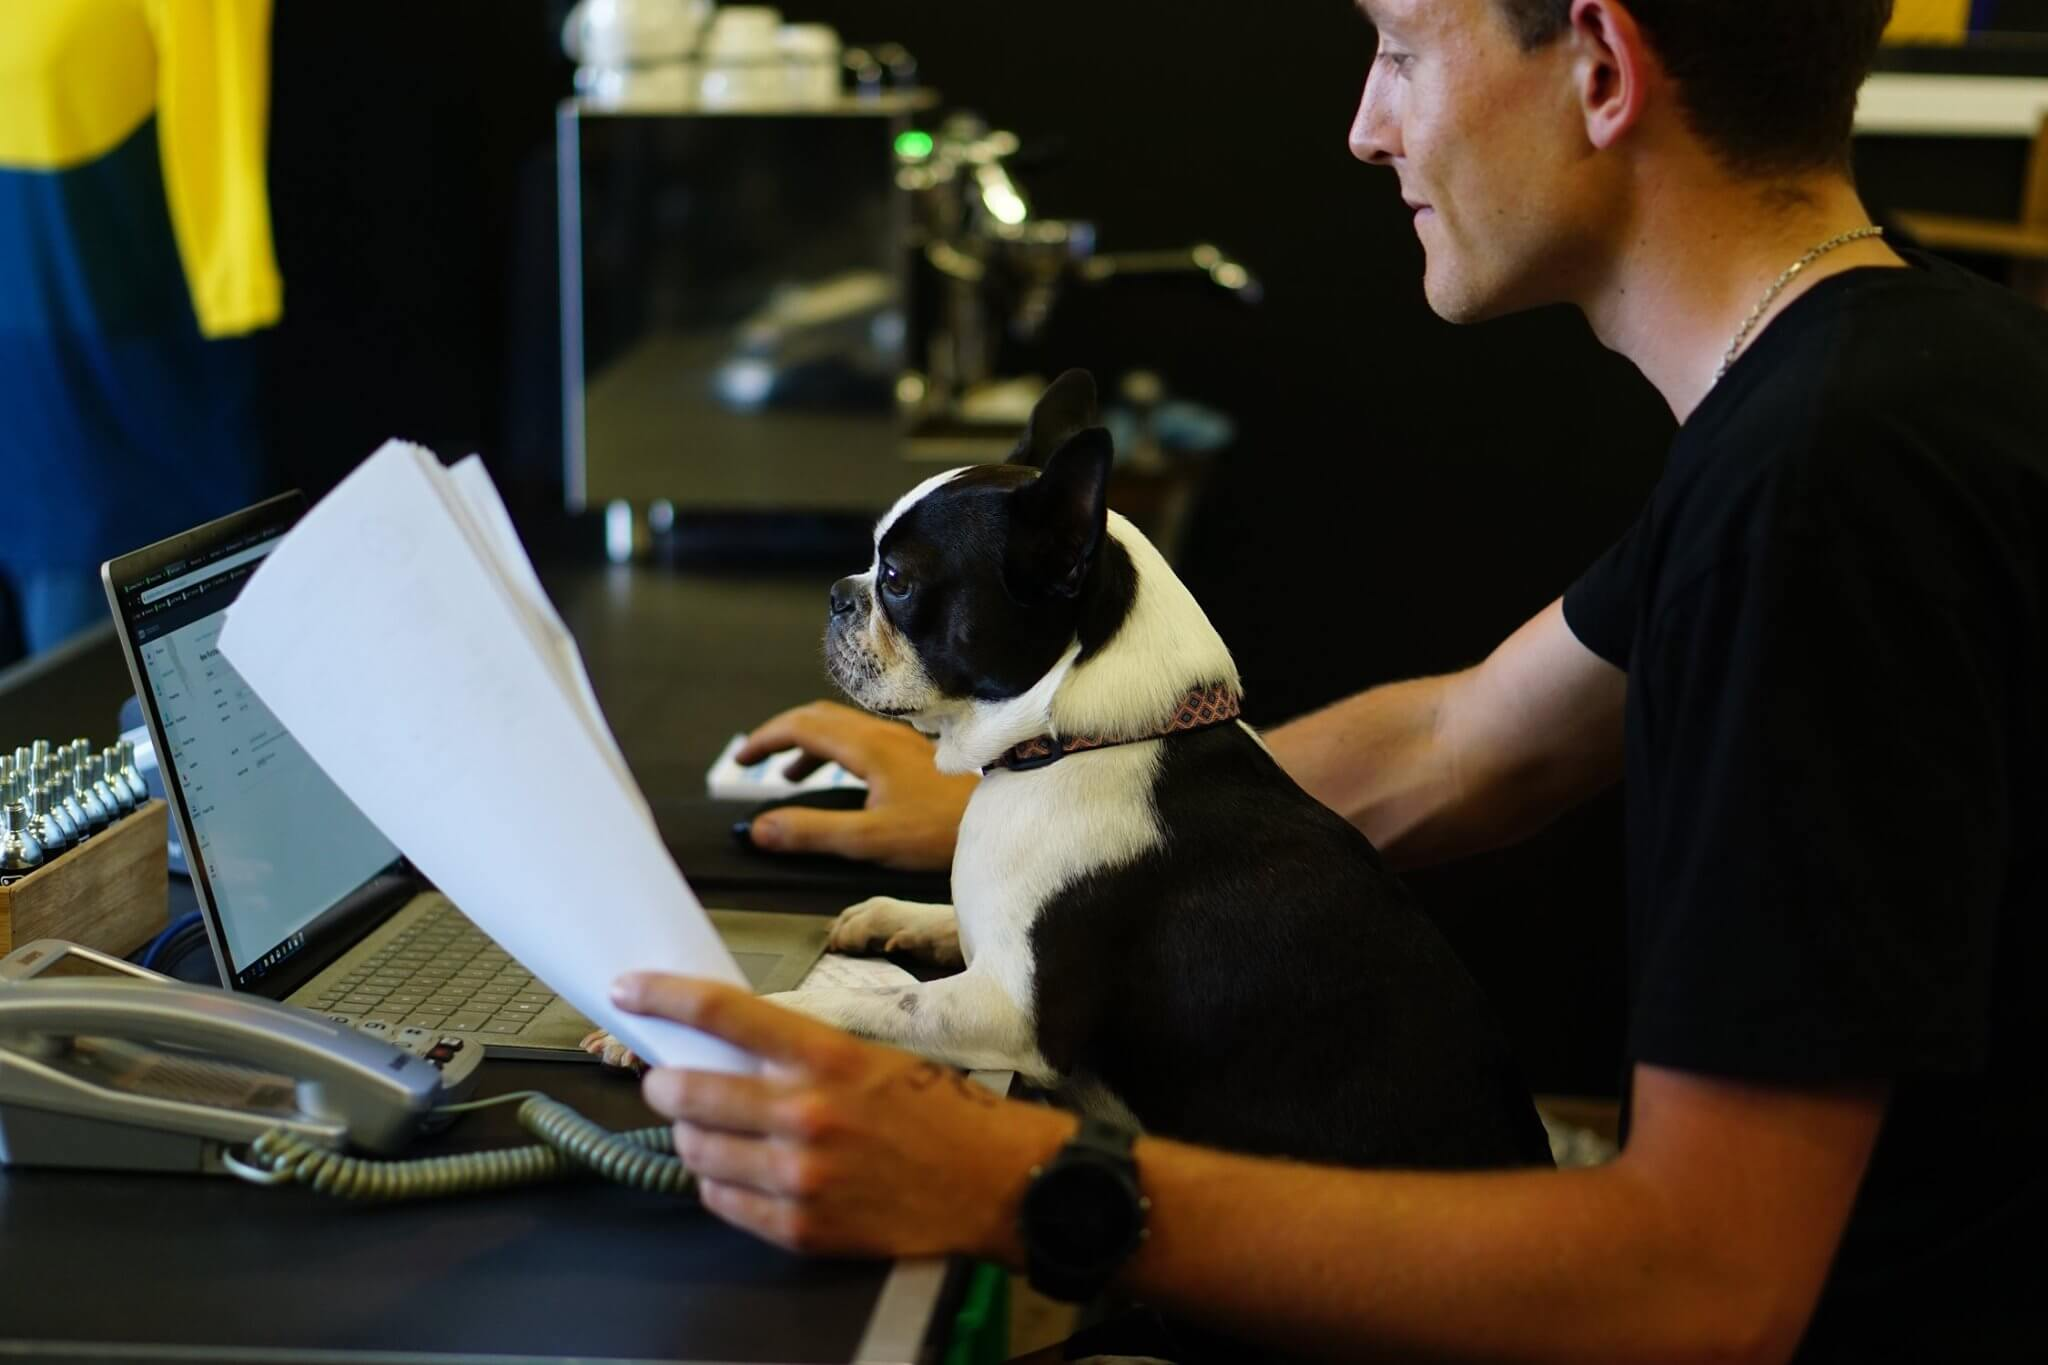 Logan Griffin and a dog, Chewie, working on a computer at CYCO